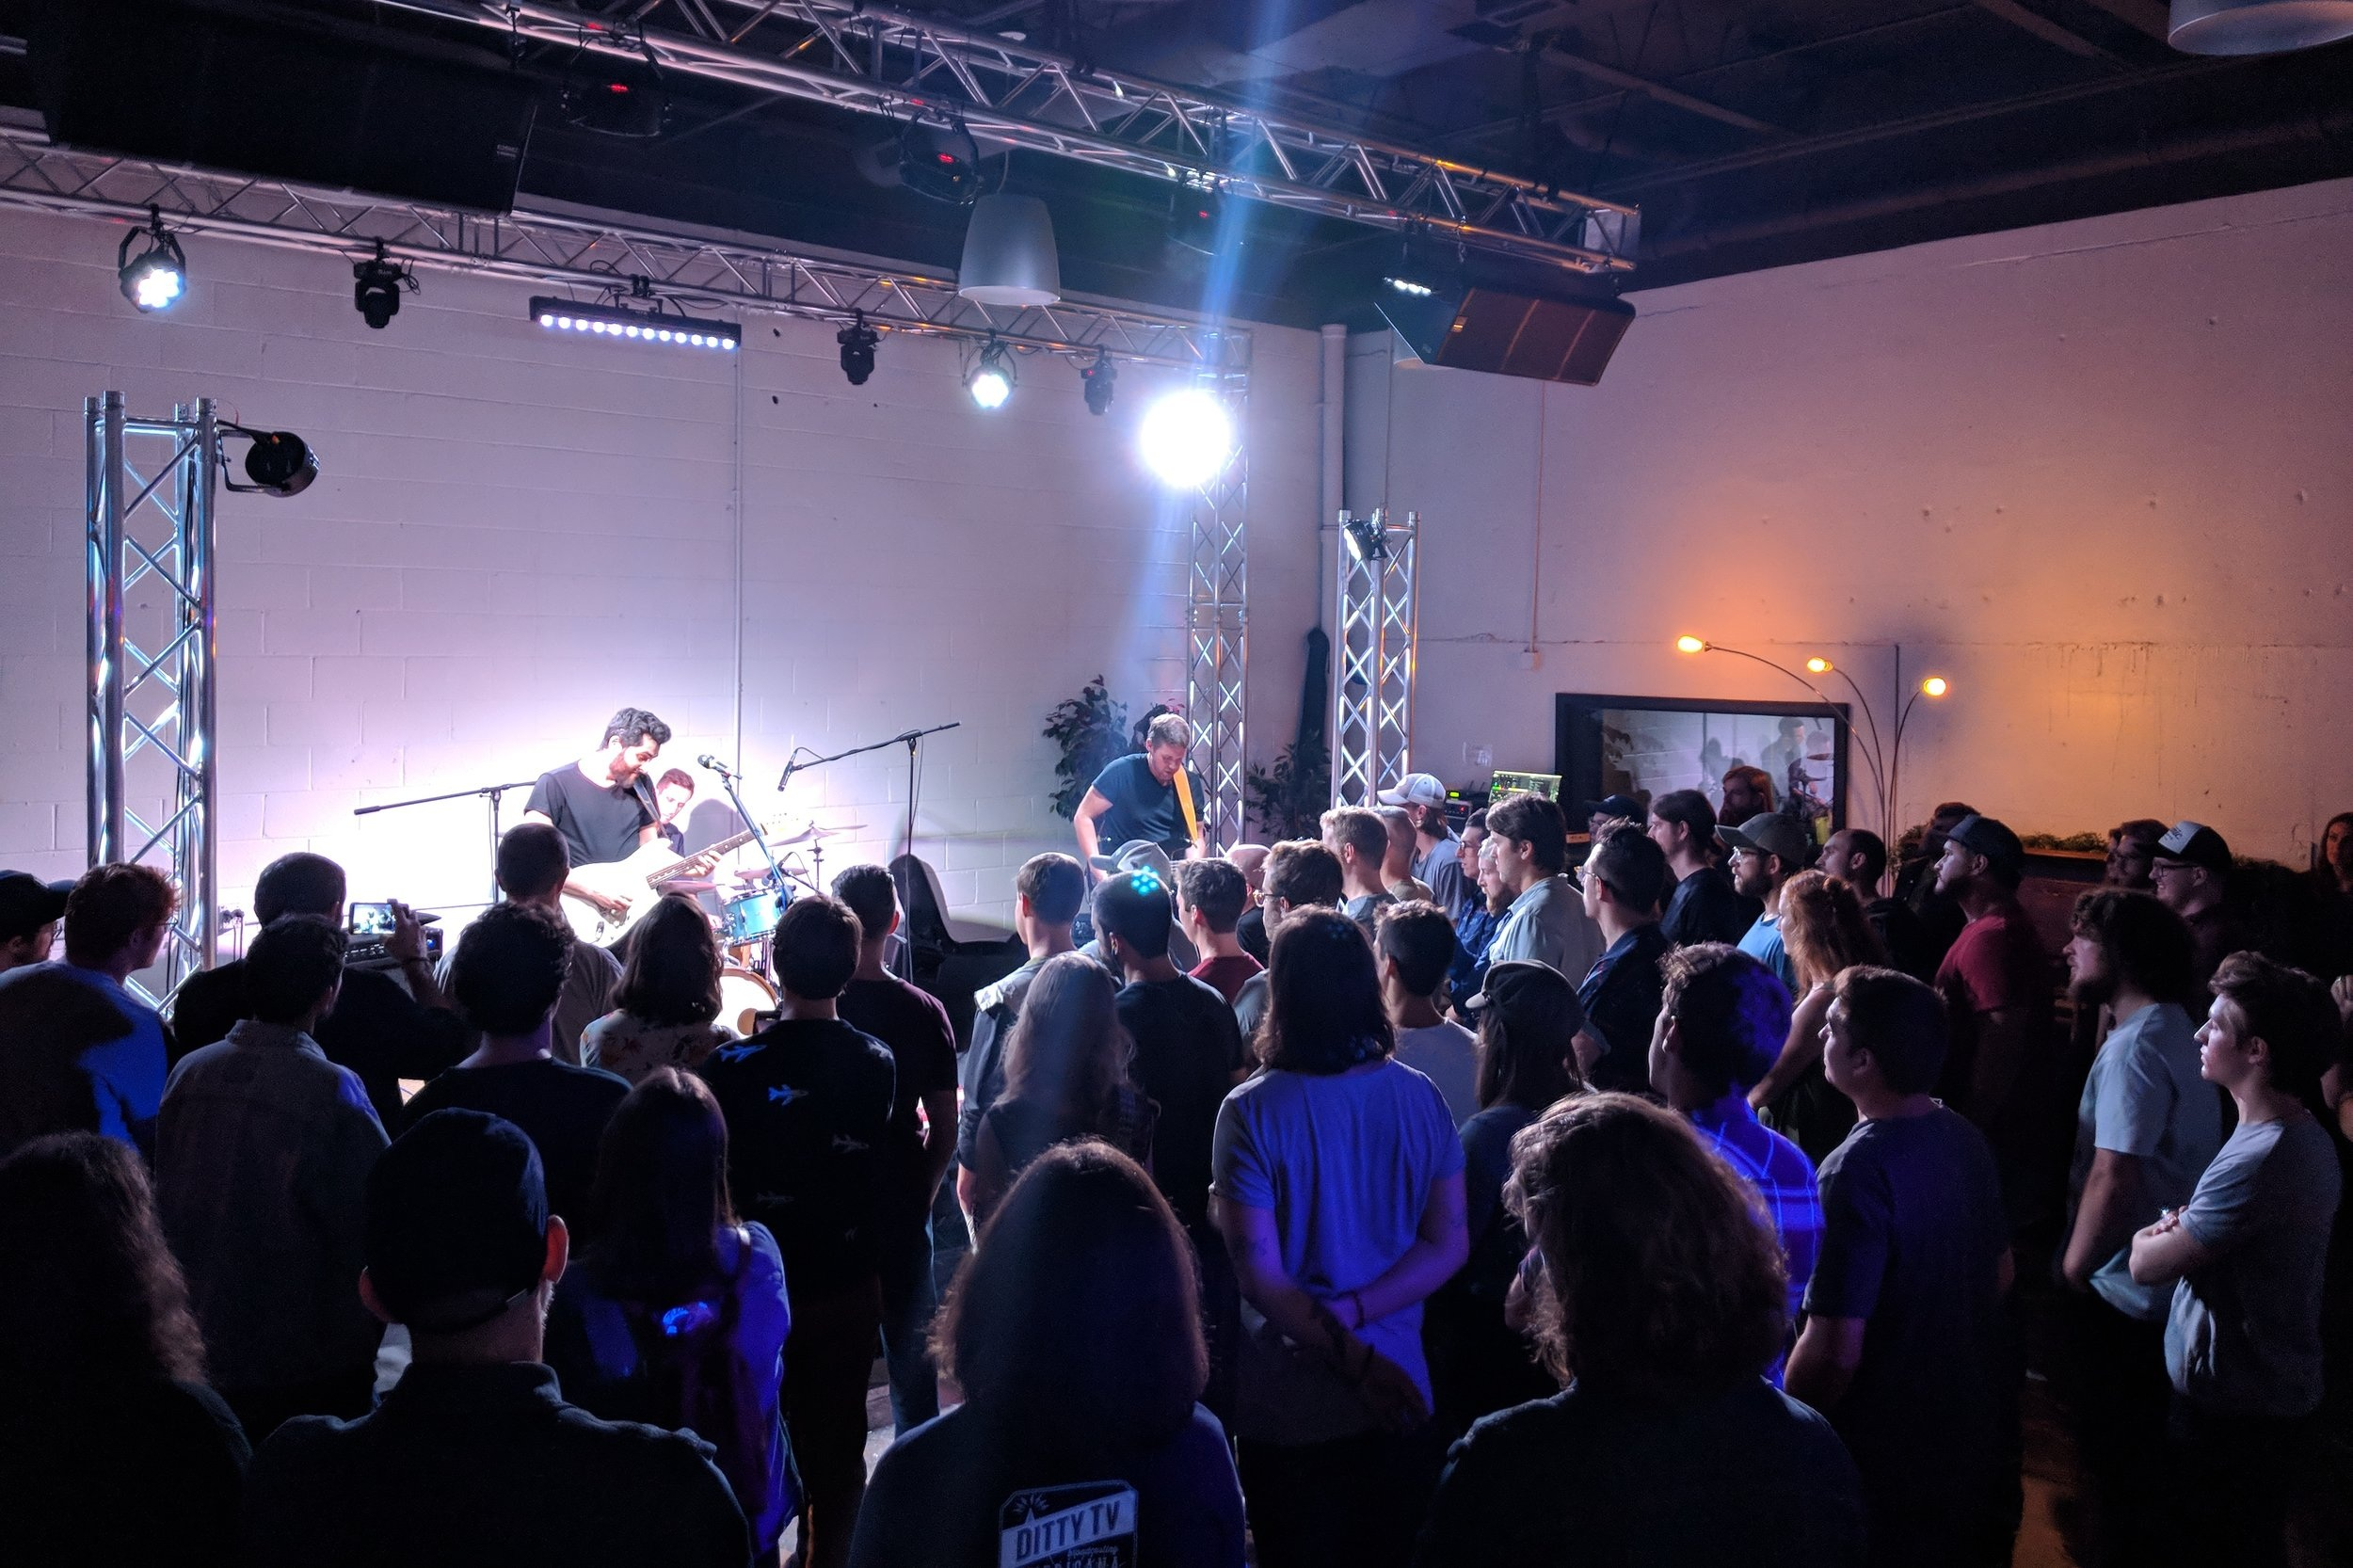 Pro - $2,500/yr. - Pro membership is designed for full-time music creators or artist reps who use the facility to accelerate their projects and need unlimited coworking access.